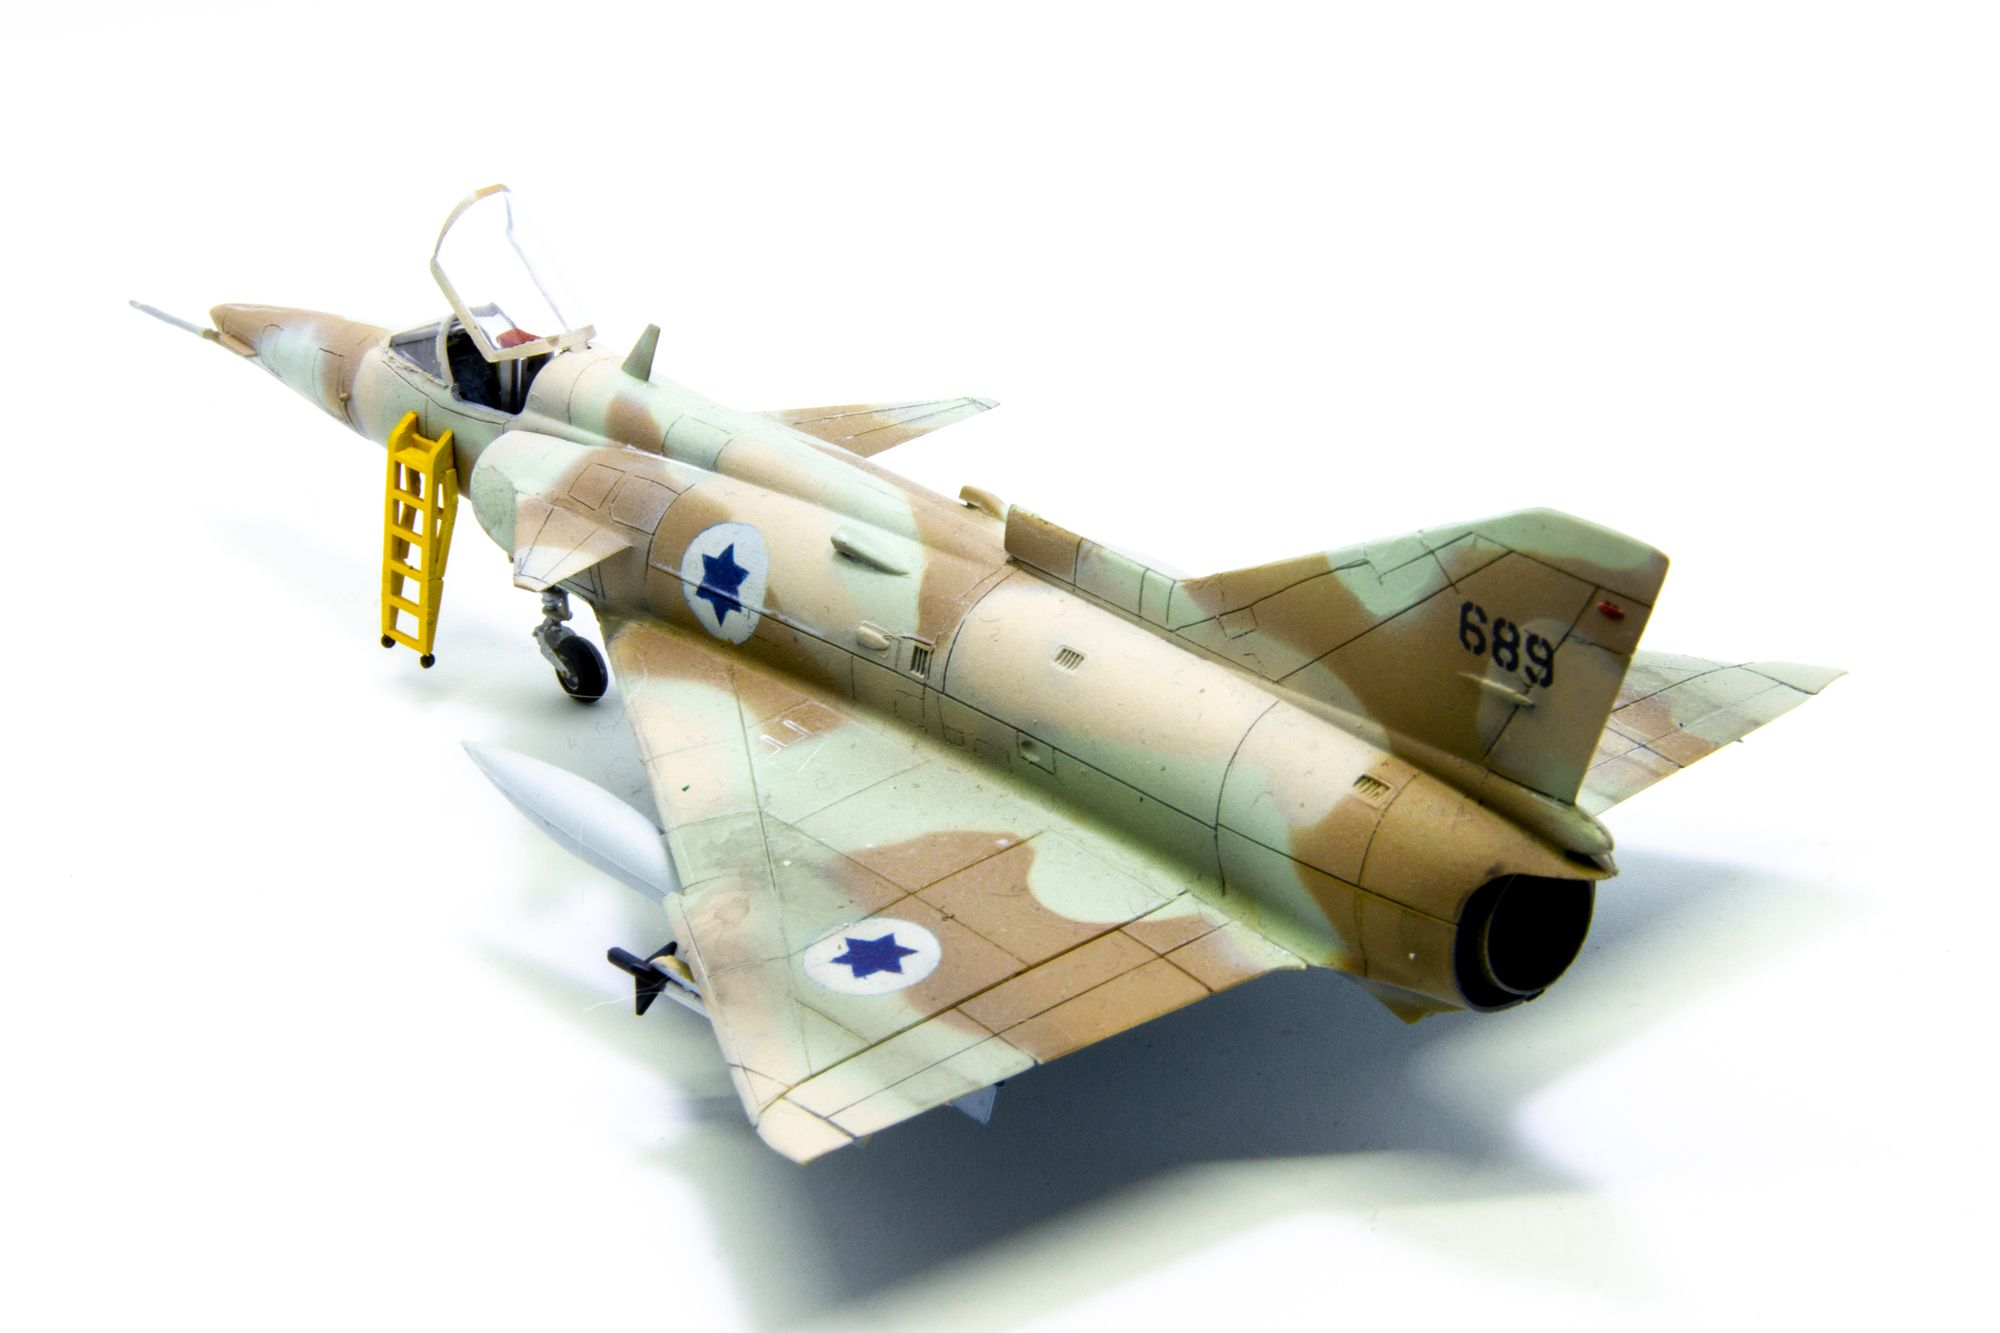 So... How about a little KFIR C2  today.  Old Hasegawa model in 1/72. This is the first model I eve